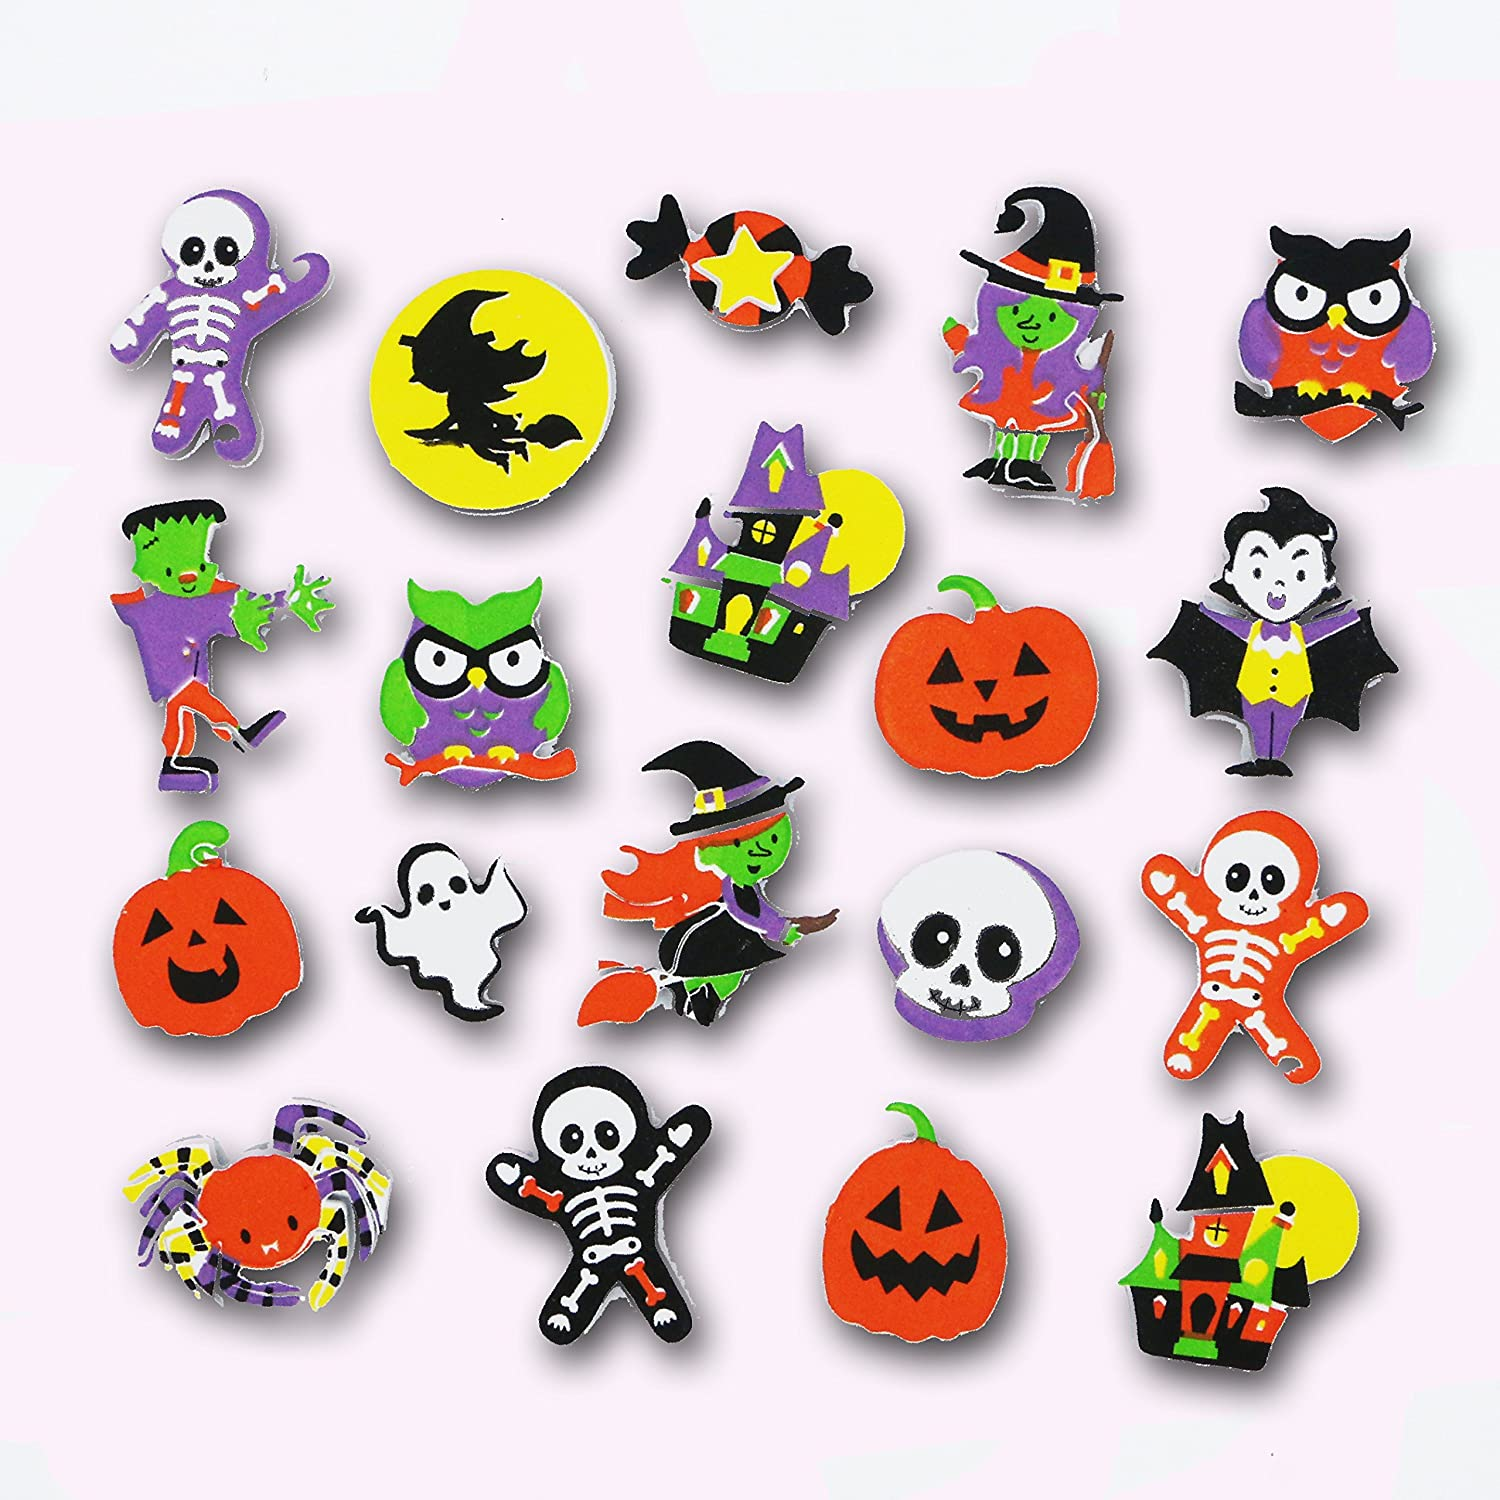 Fright Night Halloween Printed EVA Foam Craft Adhesive Shape Stickers - Assorted Styles - 45 Pieces Link Product